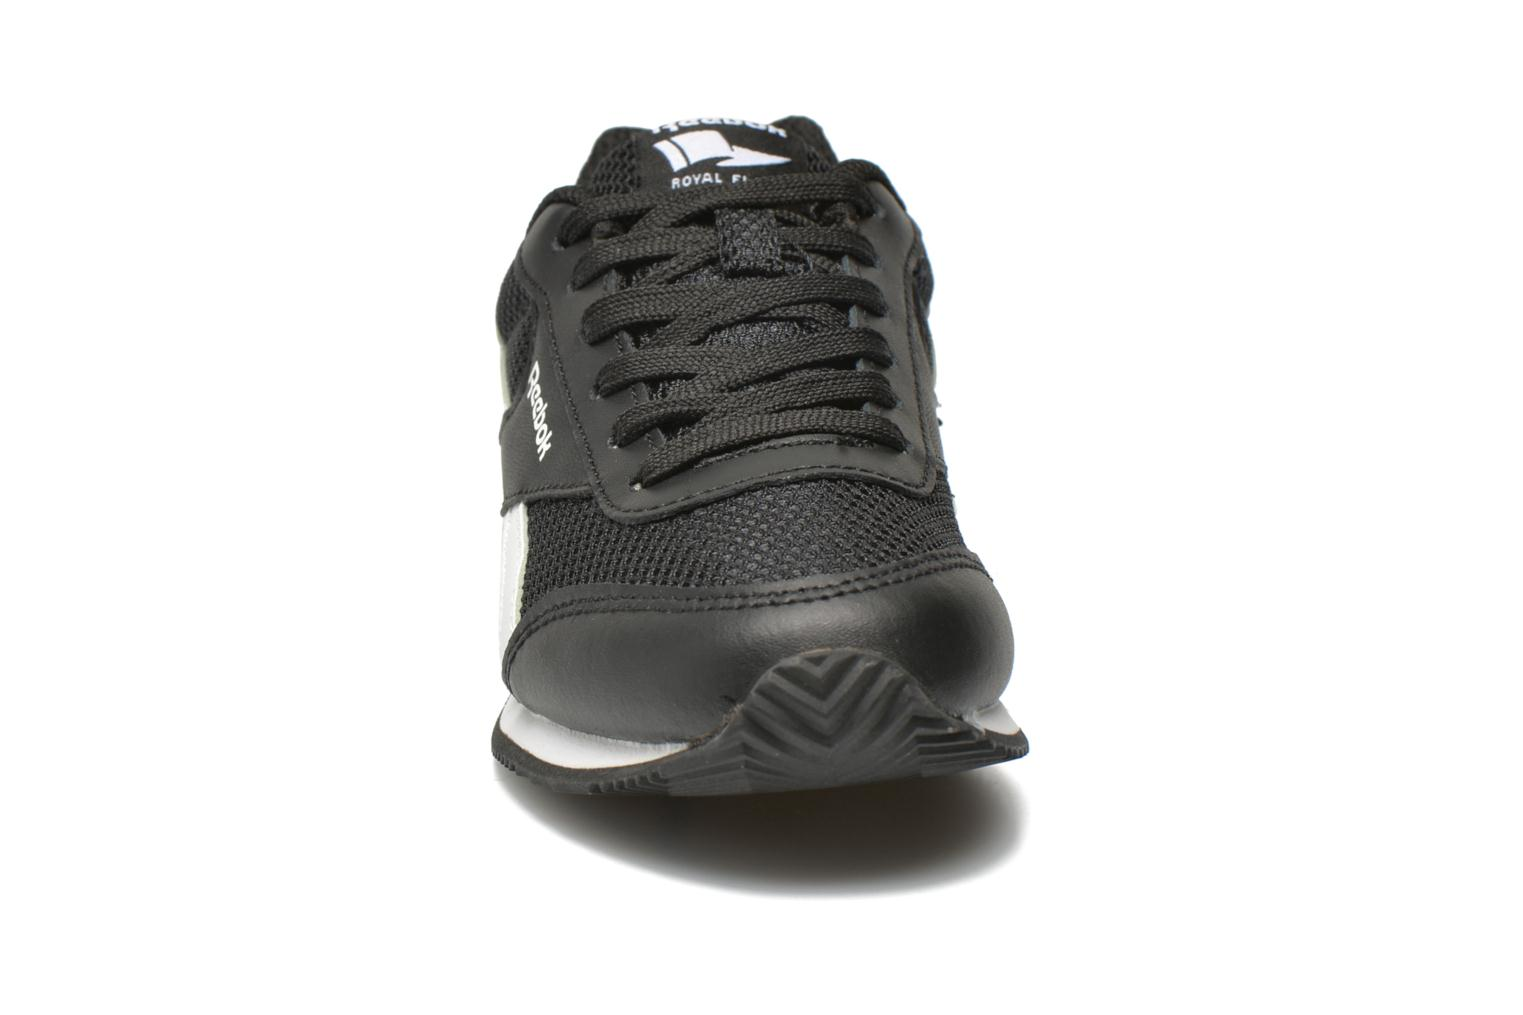 Reebok royal cljog 1 Black/white